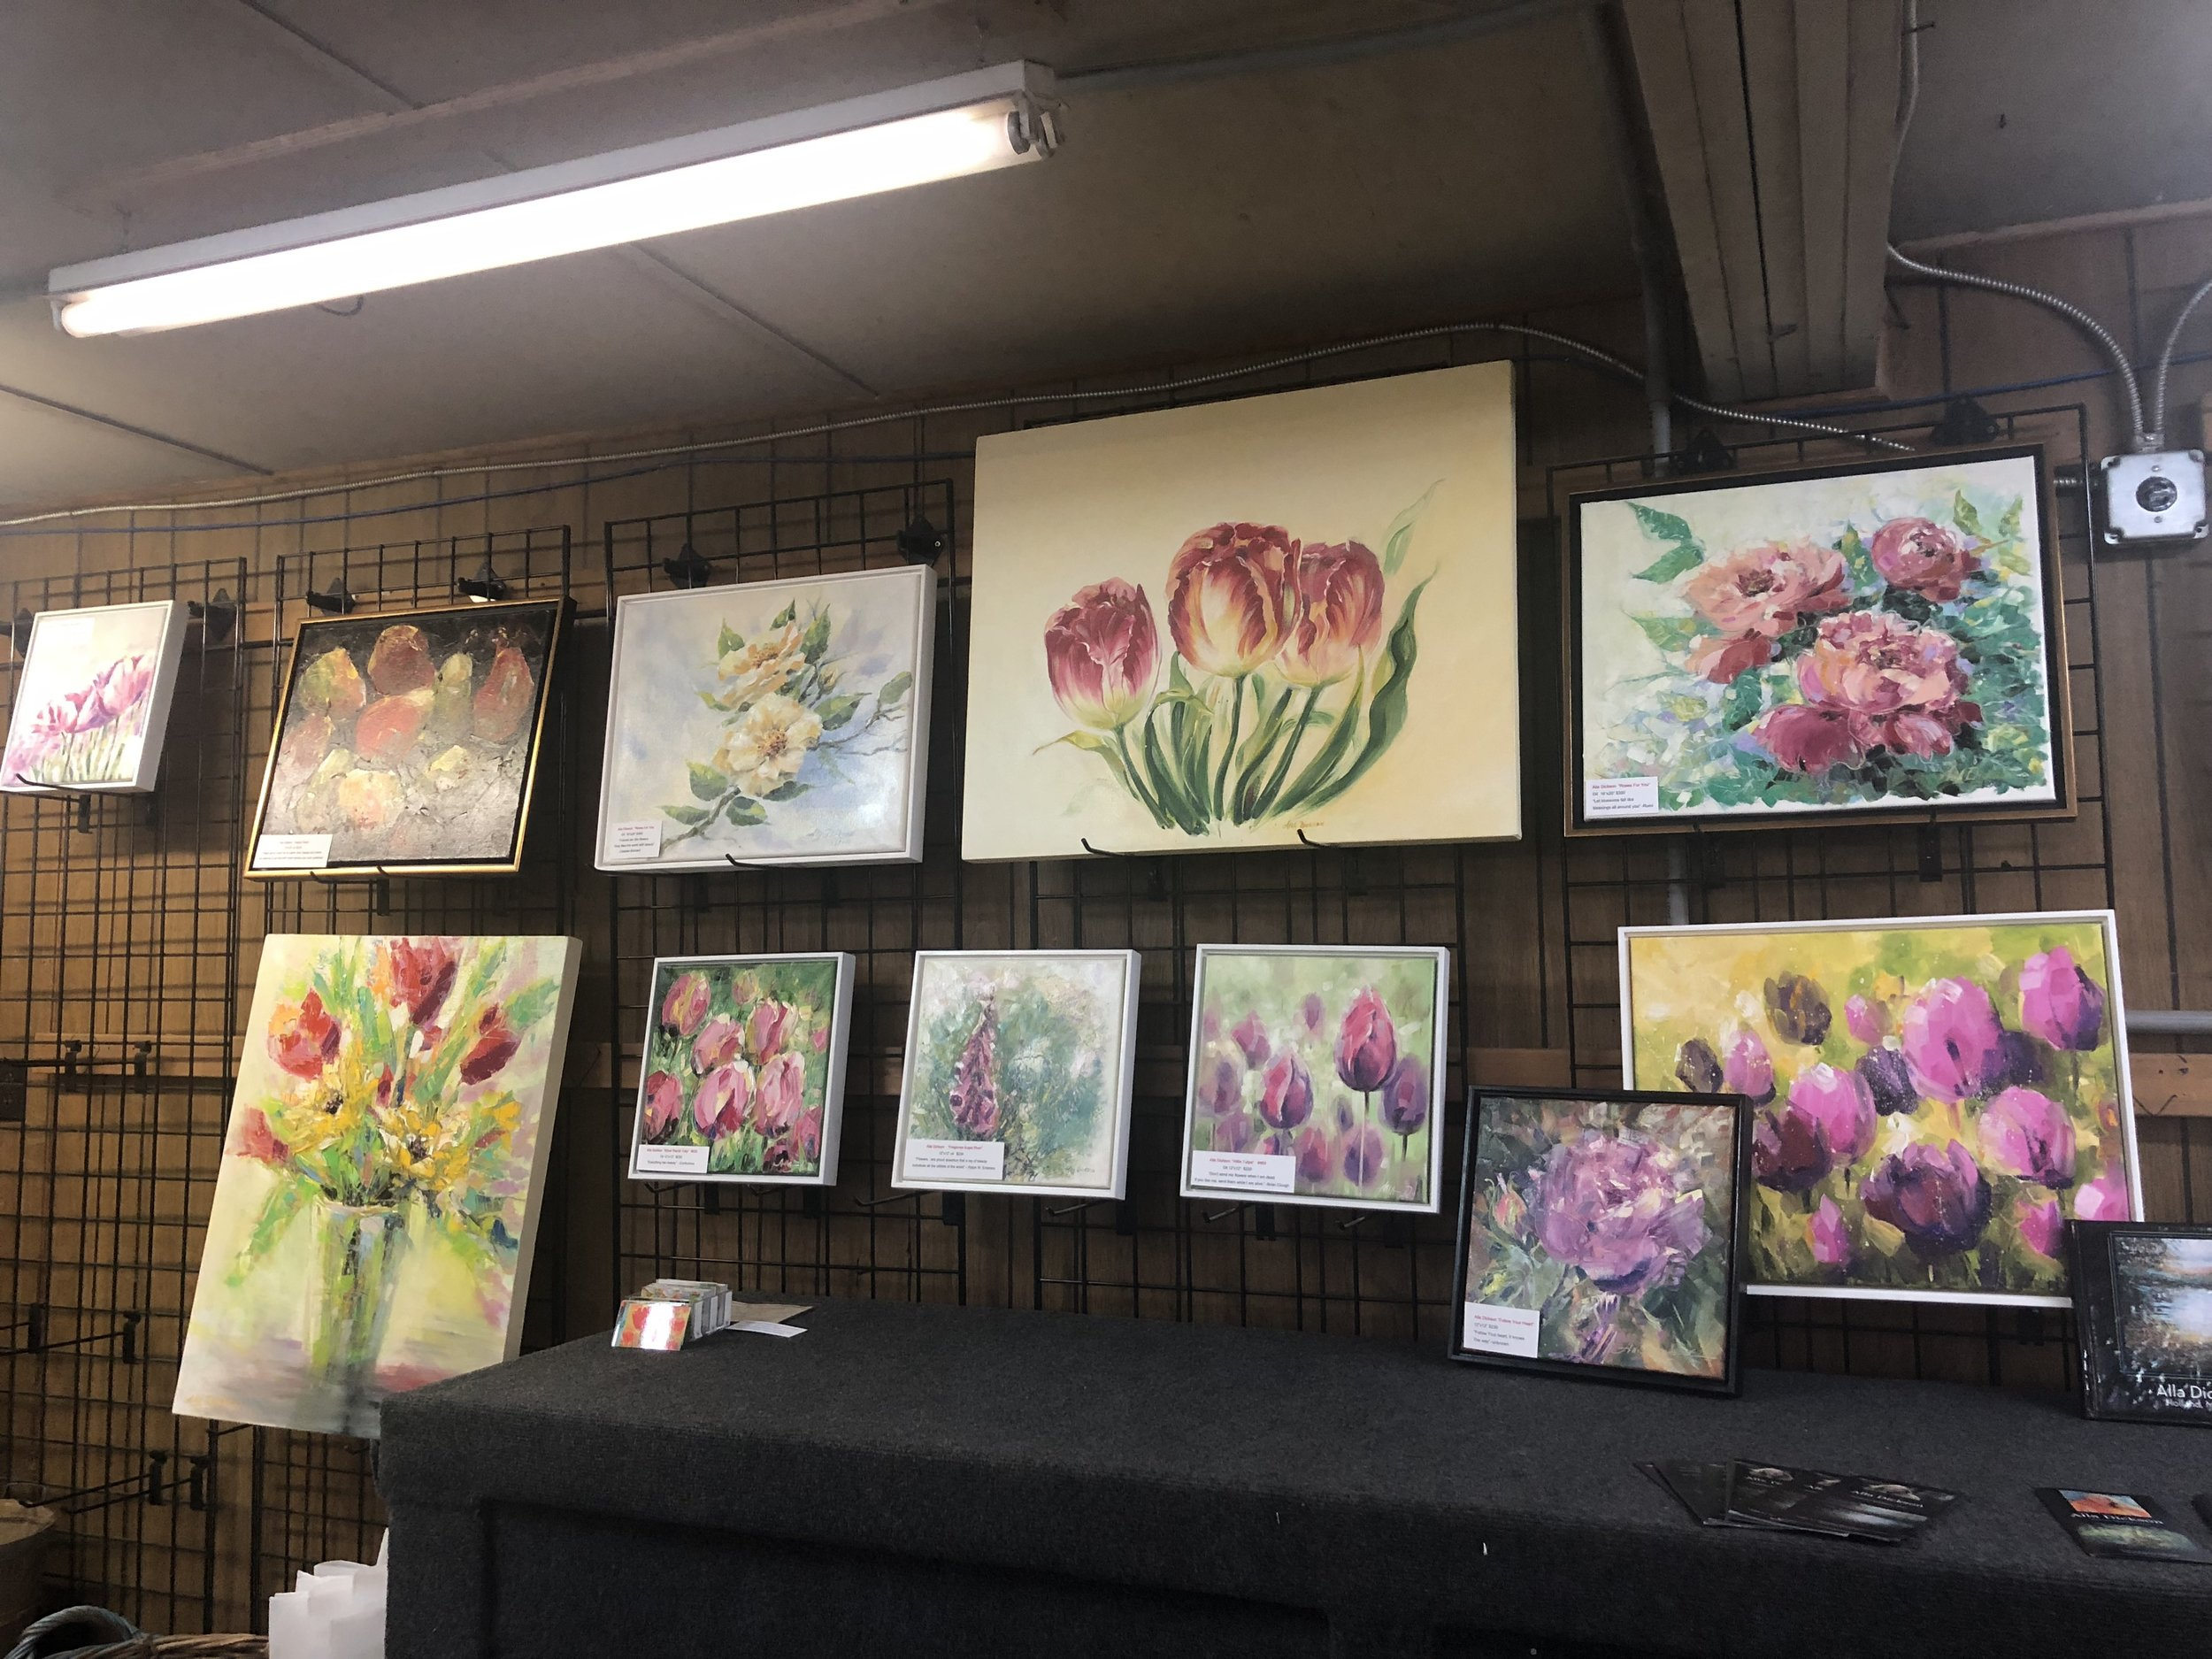 One of the artists that were choosen in the past for Tulip Time has her art work on display. Also, she bringing artists into the fields to paint.